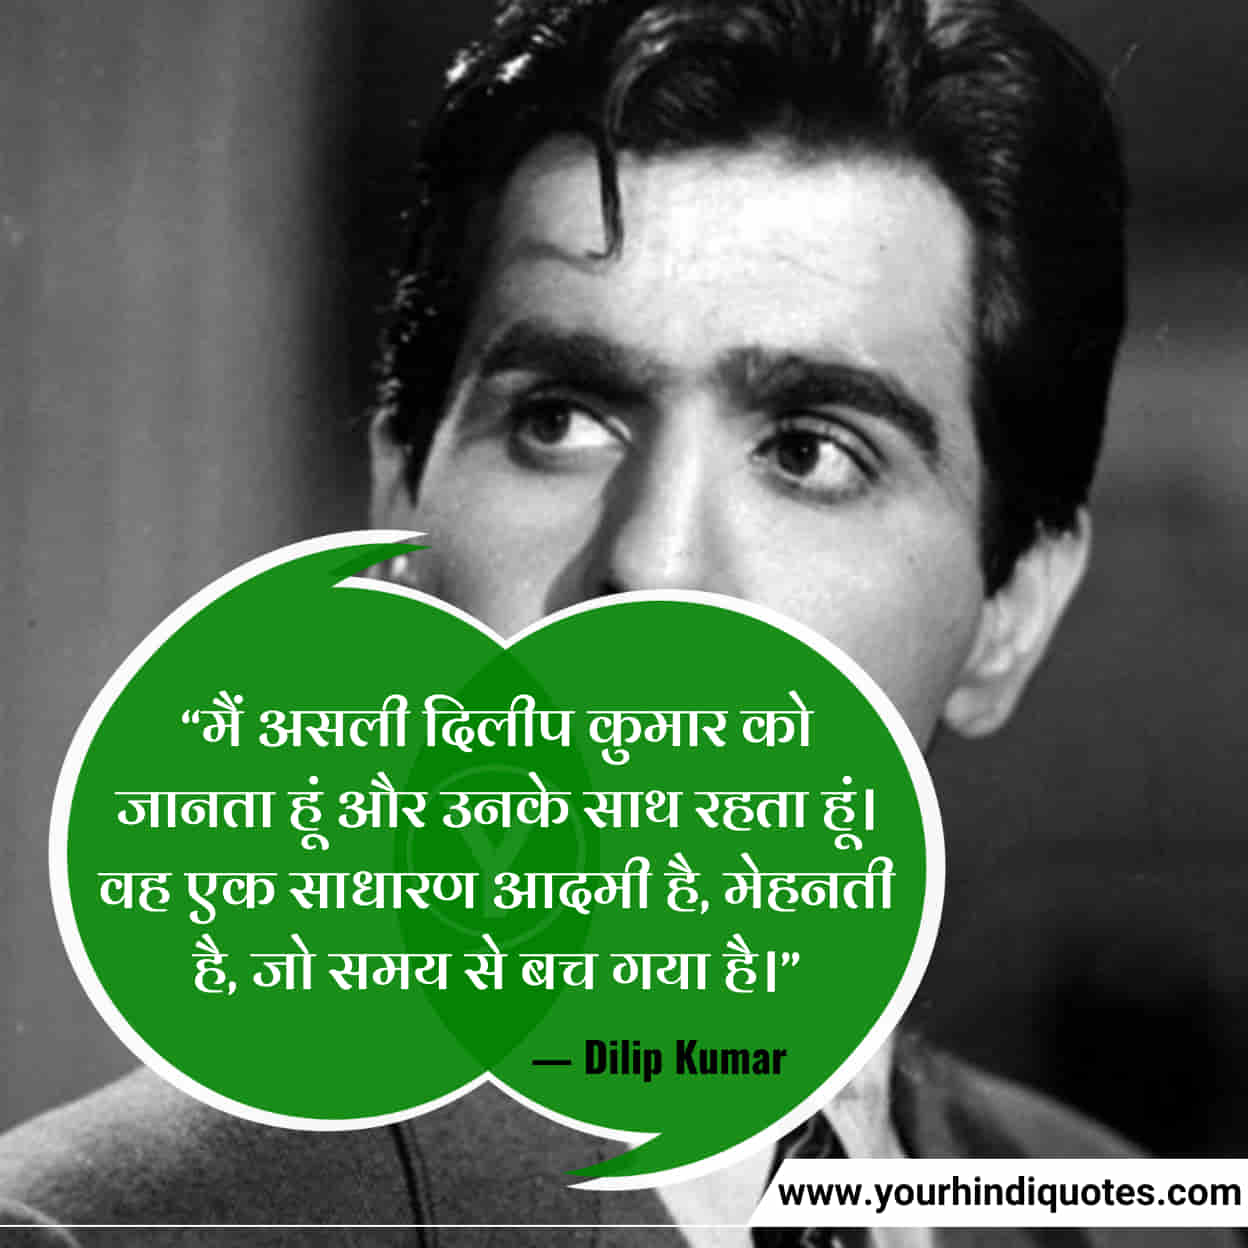 Latest Dilip Kumar Quotes In Hindi